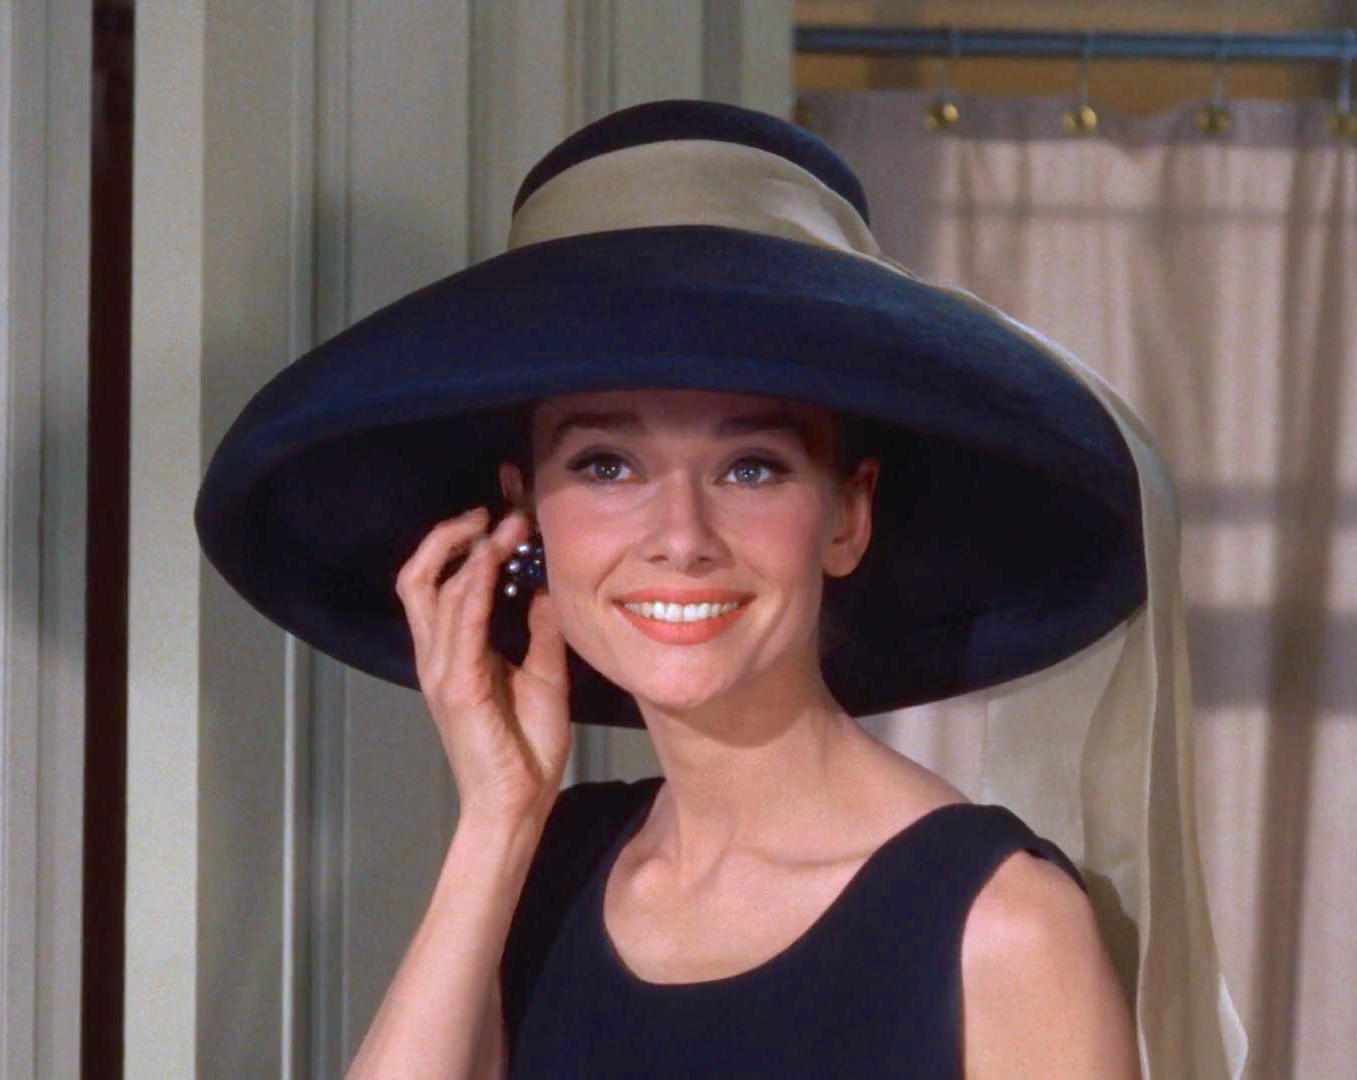 https://upload.wikimedia.org/wikipedia/commons/7/7e/Audrey_Hepburn_Tiffany%27s.jpg